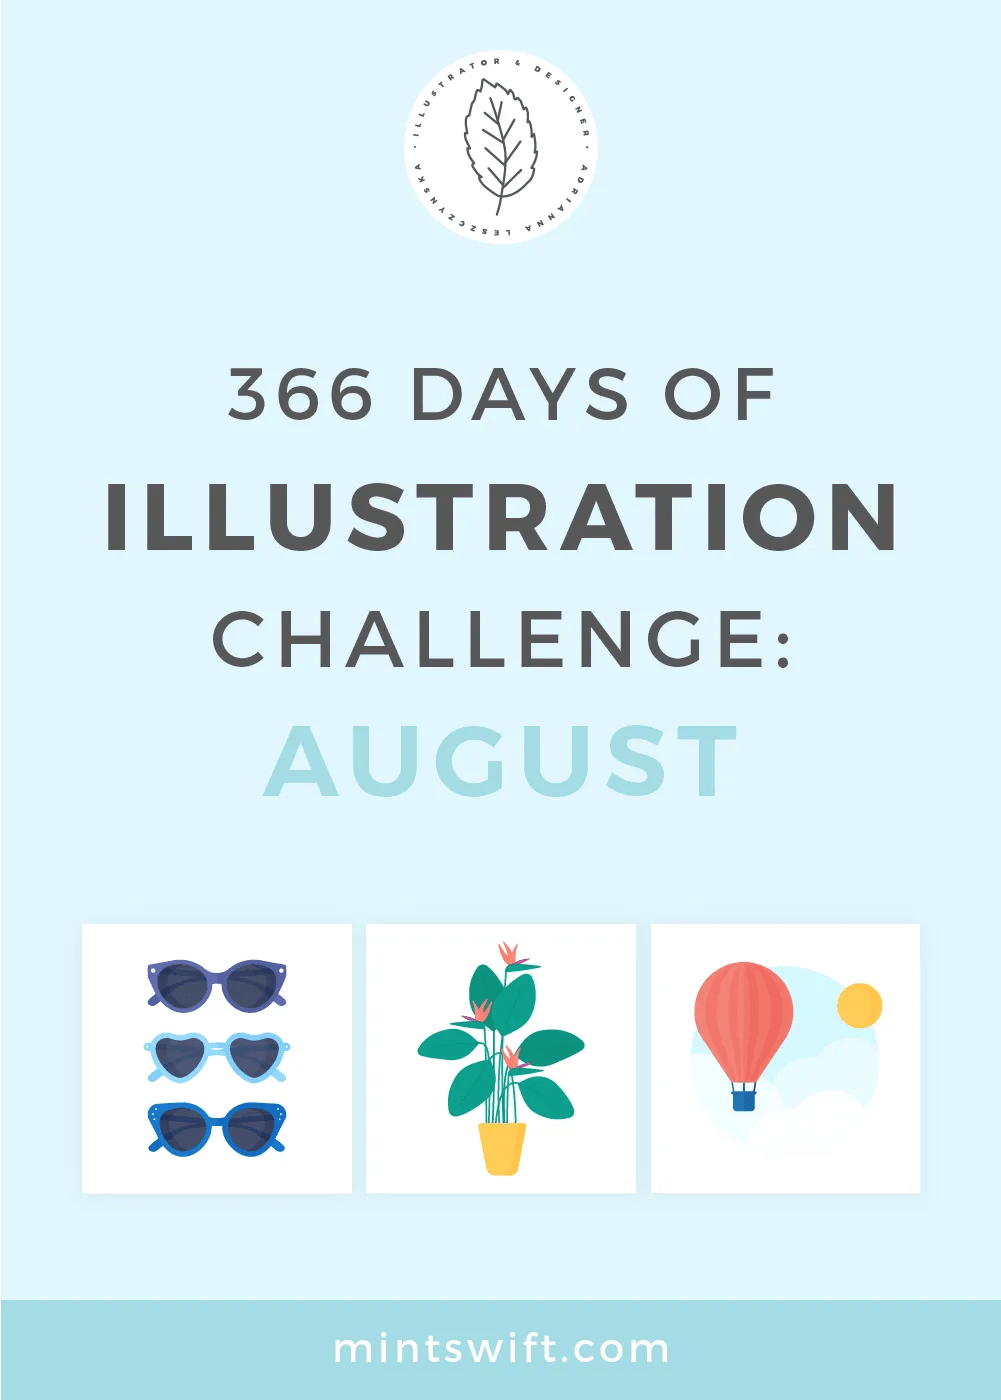 366 Days of Illustration Challenge - August by MintSwift. The eighth month of illustration challenge (day 214-244). Vector illustrations in flat design style about clocks, seashells, sports, house plants, sunglasses